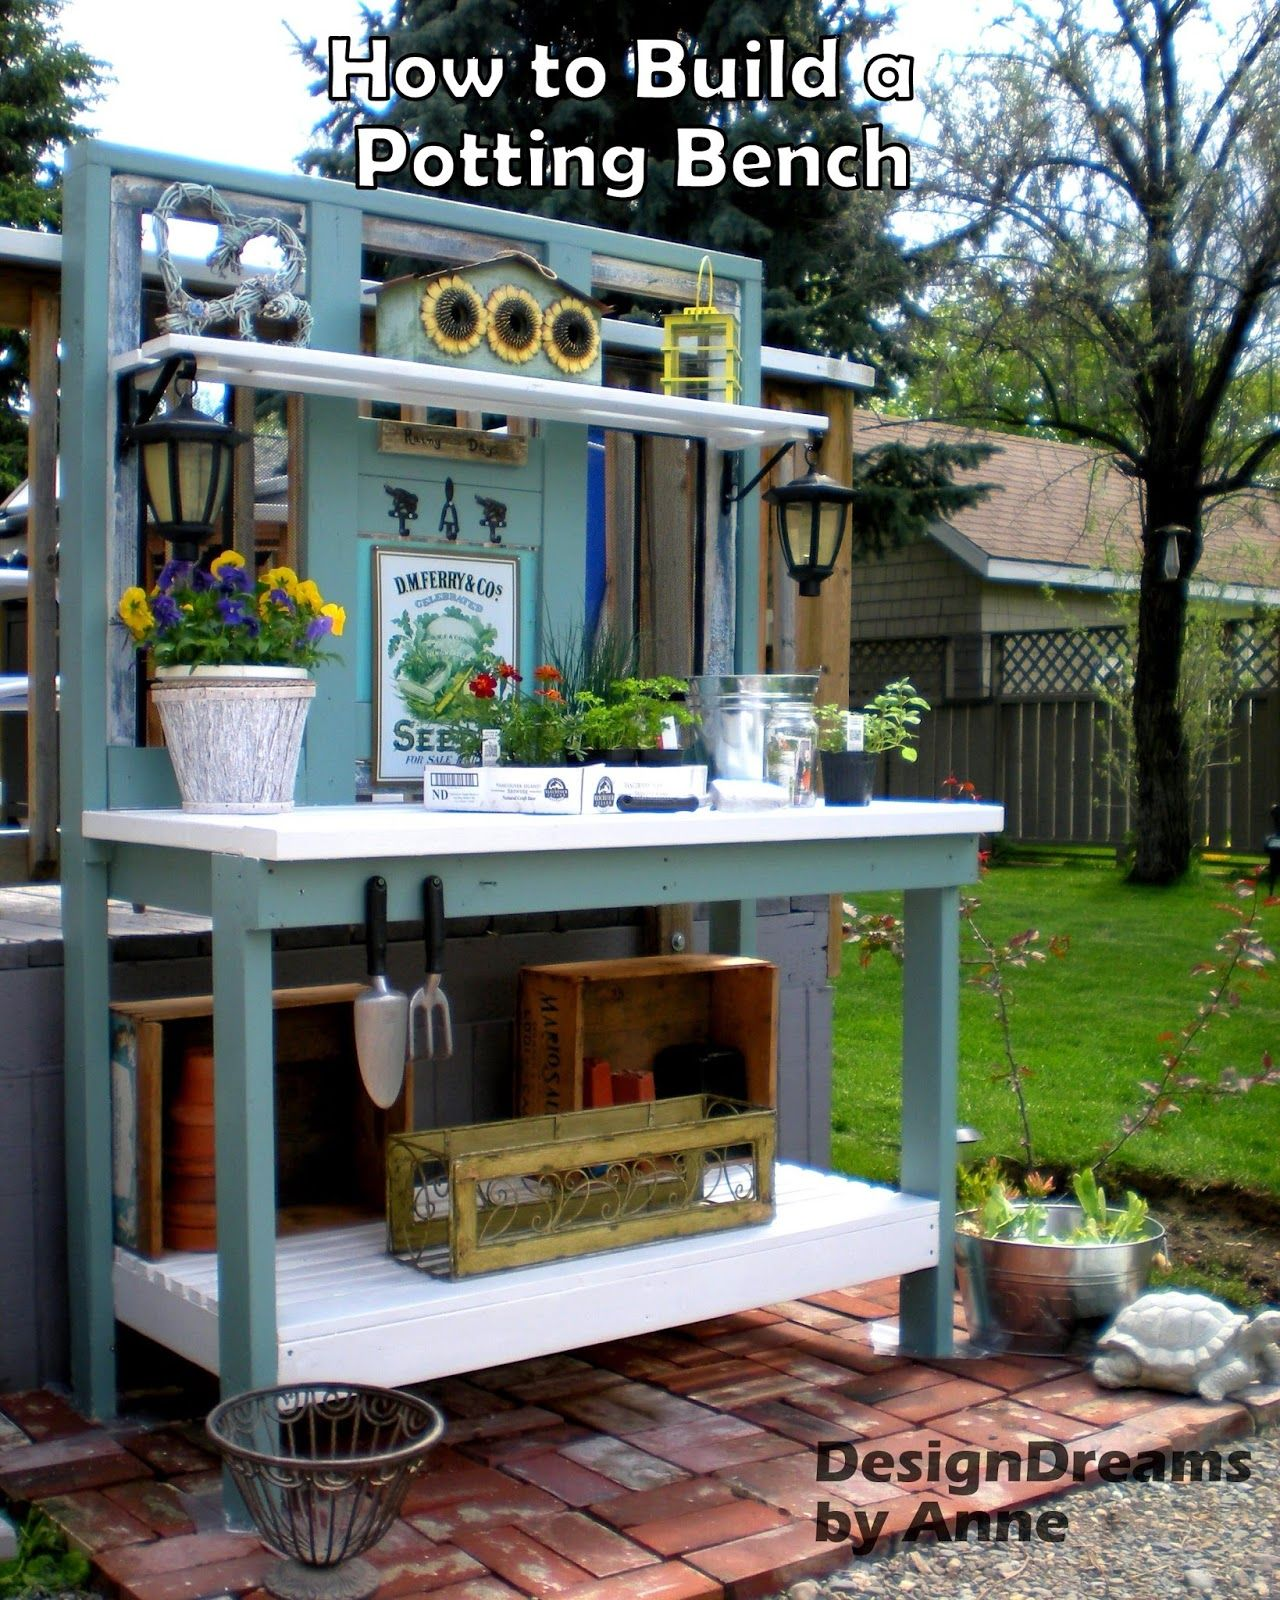 How To Build A Potting Bench   Mix Of Old U0026 New Materials